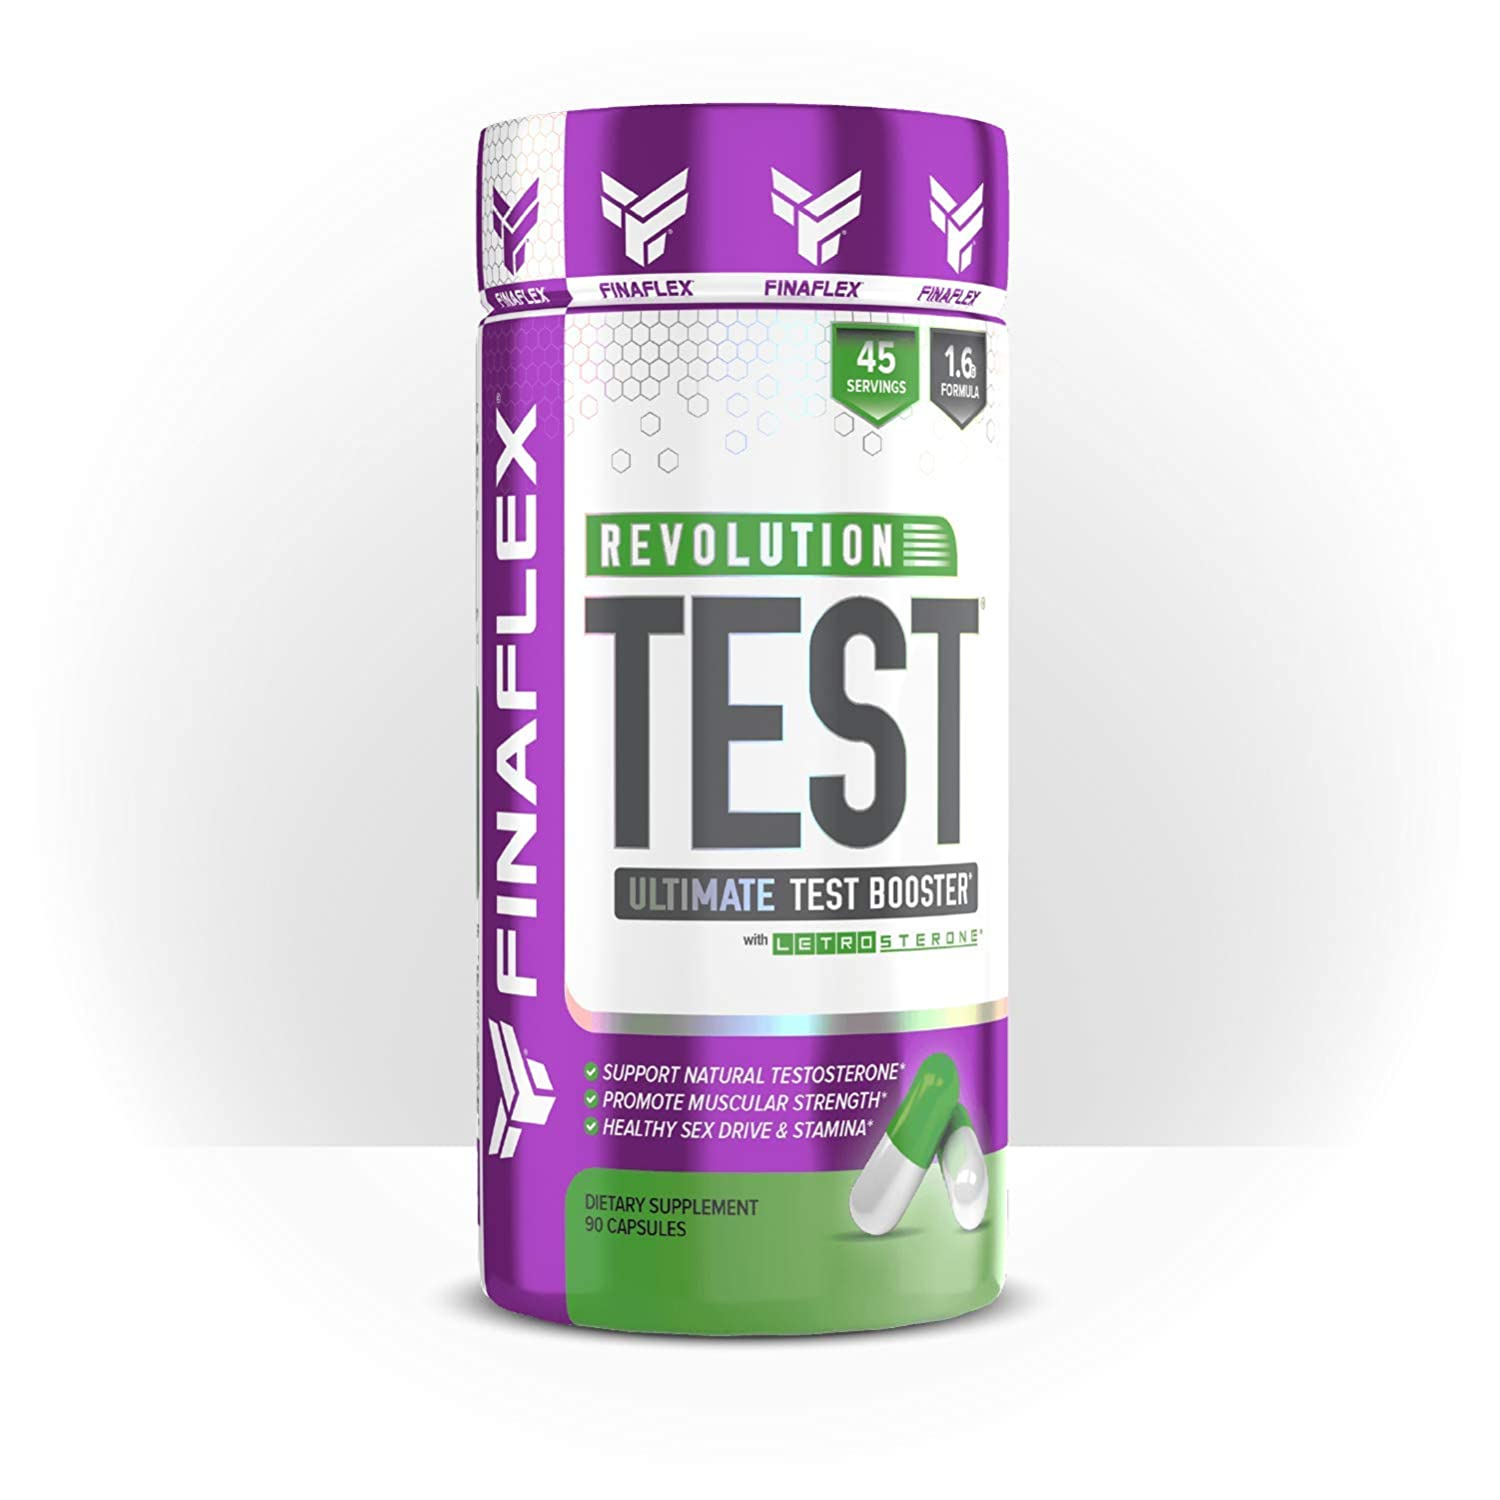 REVOLUTION TEST, Revitalize Energy, Promote Strength Gains and Stamina